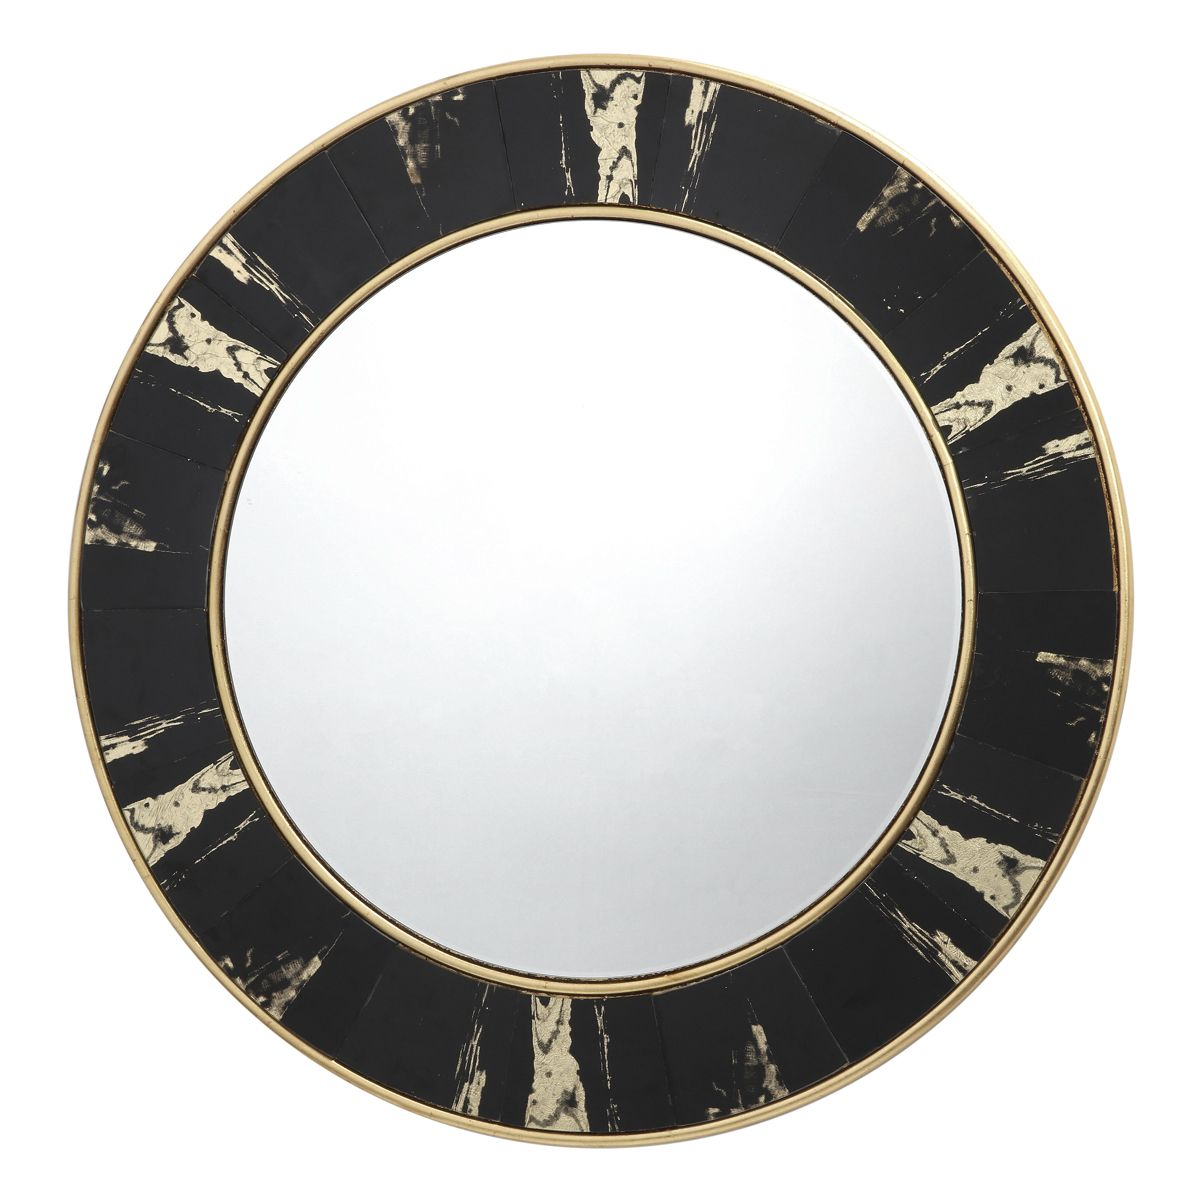 Sidone Round Mirror With Black Gold Foil Detail 80cm